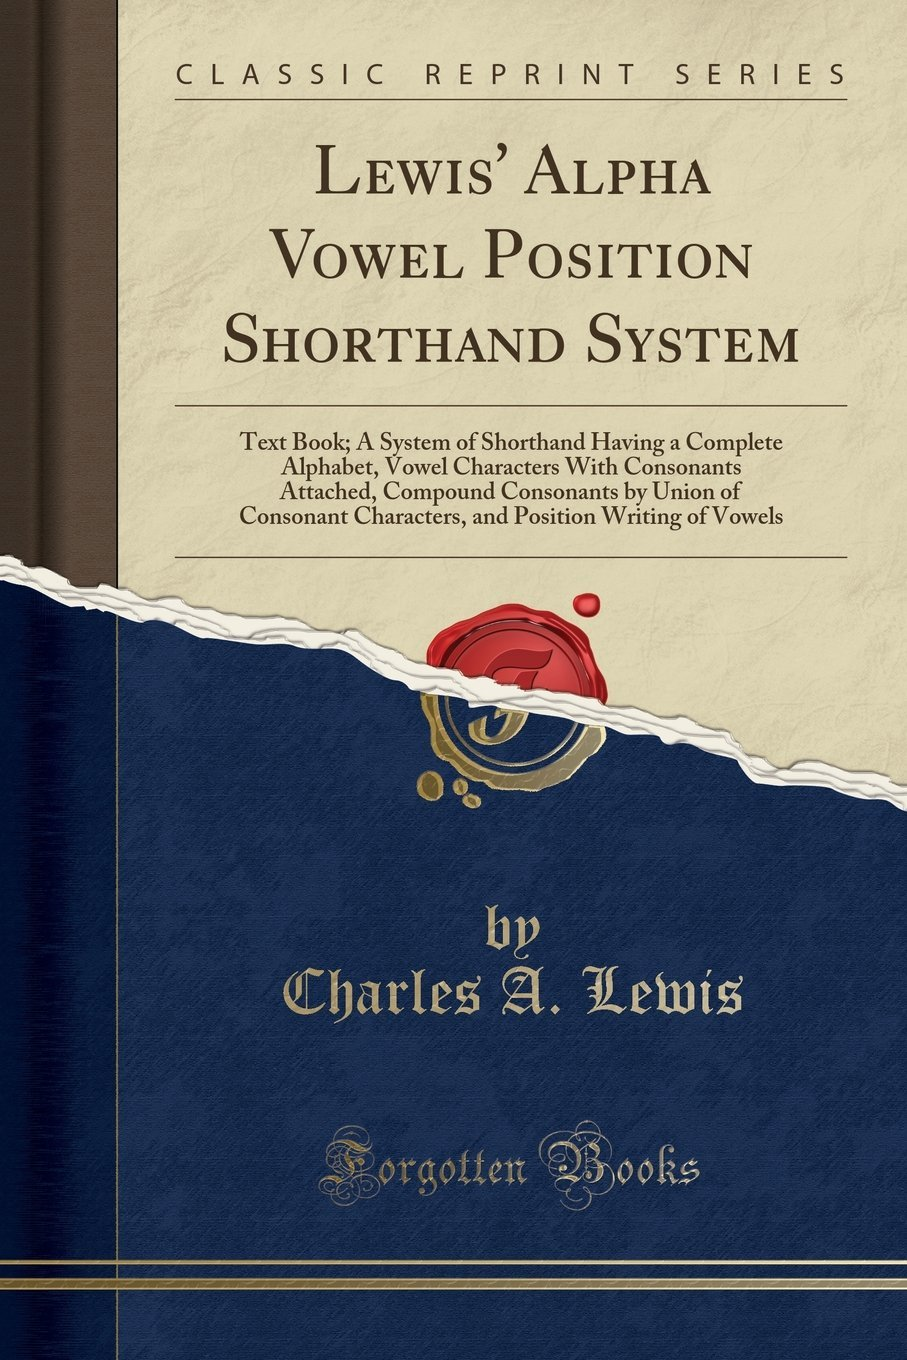 Lewis' Alpha Vowel Position Shorthand System: Text Book; A System of Shorthand Having a Complete Alphabet, Vowel Characters With Consonants Attached, ... Position Writing of Vowels (Classic Reprint) ePub fb2 ebook